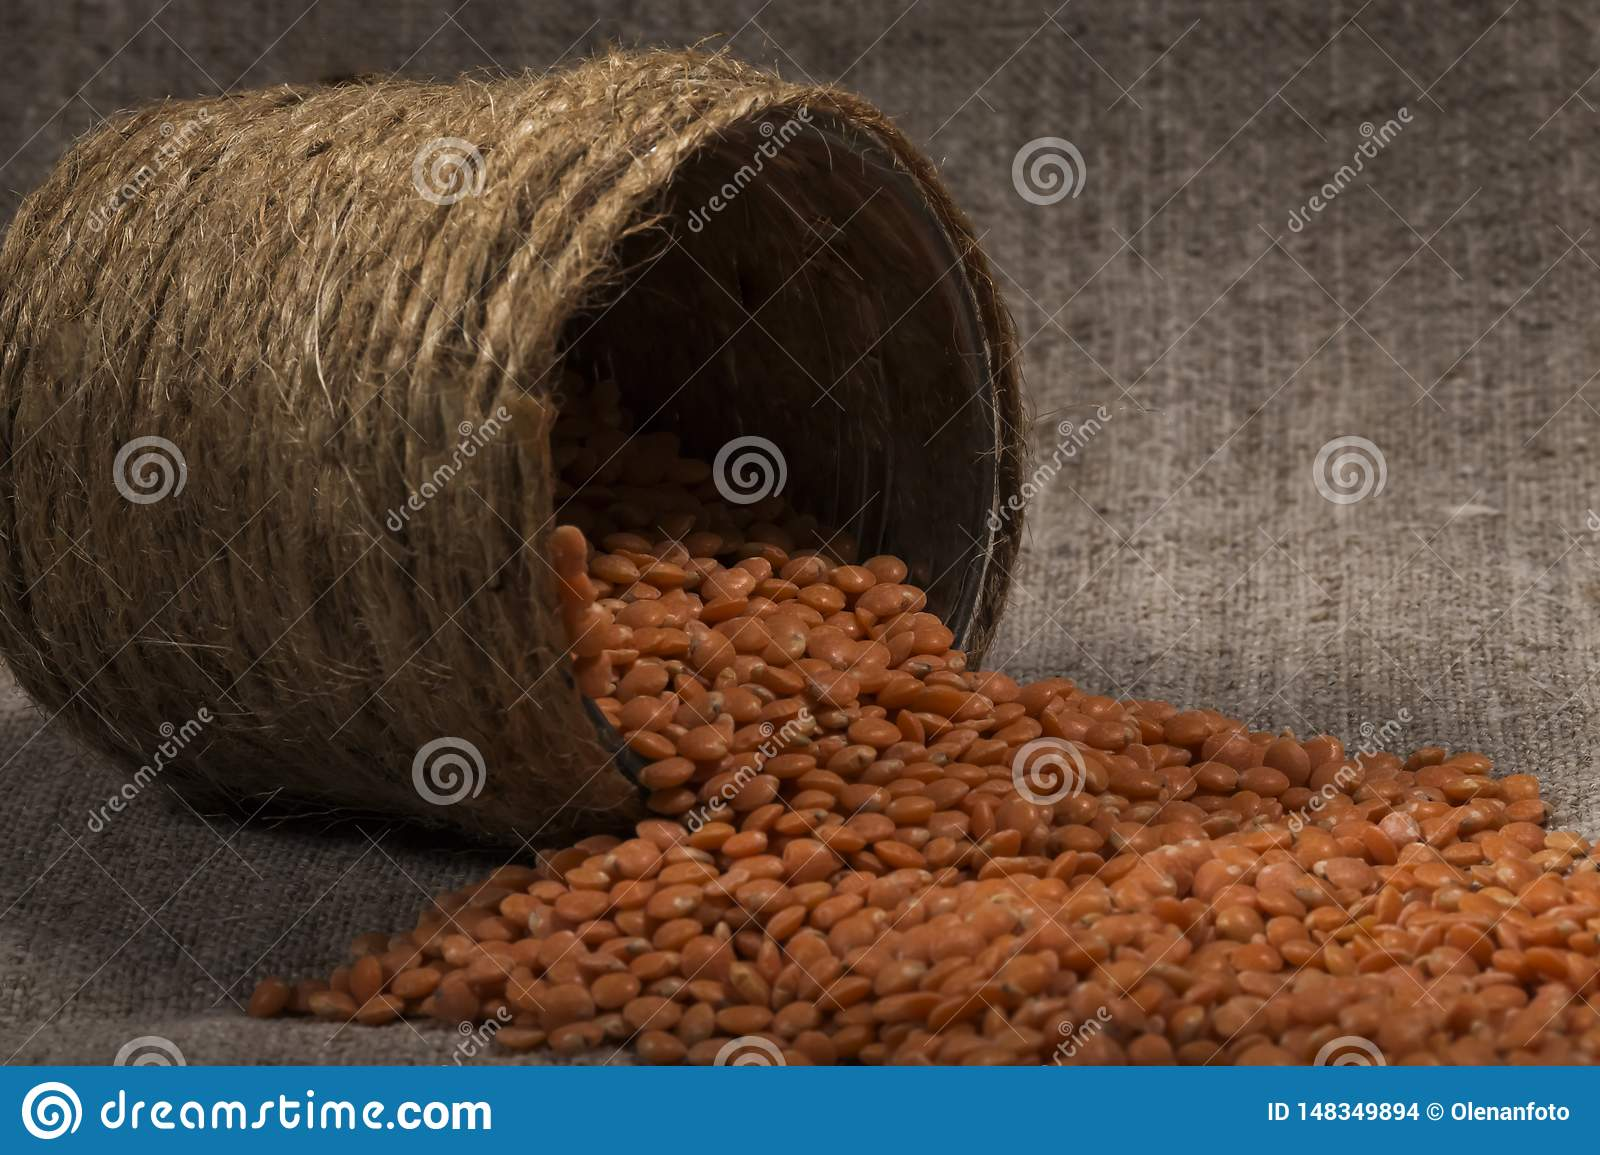 Red lentils  poured out, scatter of cans of handmade. lentil texture, lentil pattern, background, macro. concept of healthy eating